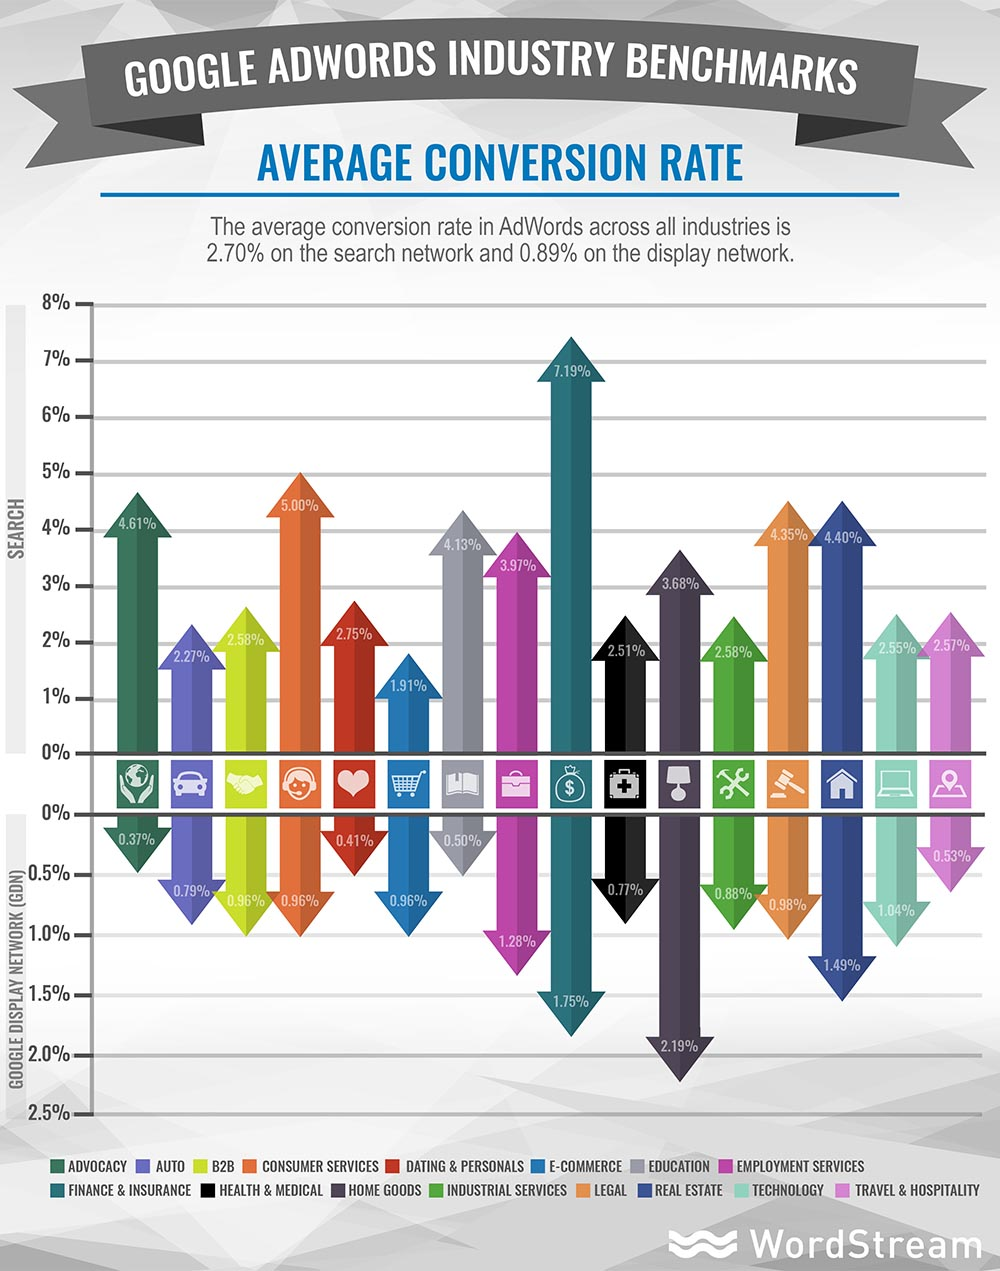 Average Conversion Rate per Industry